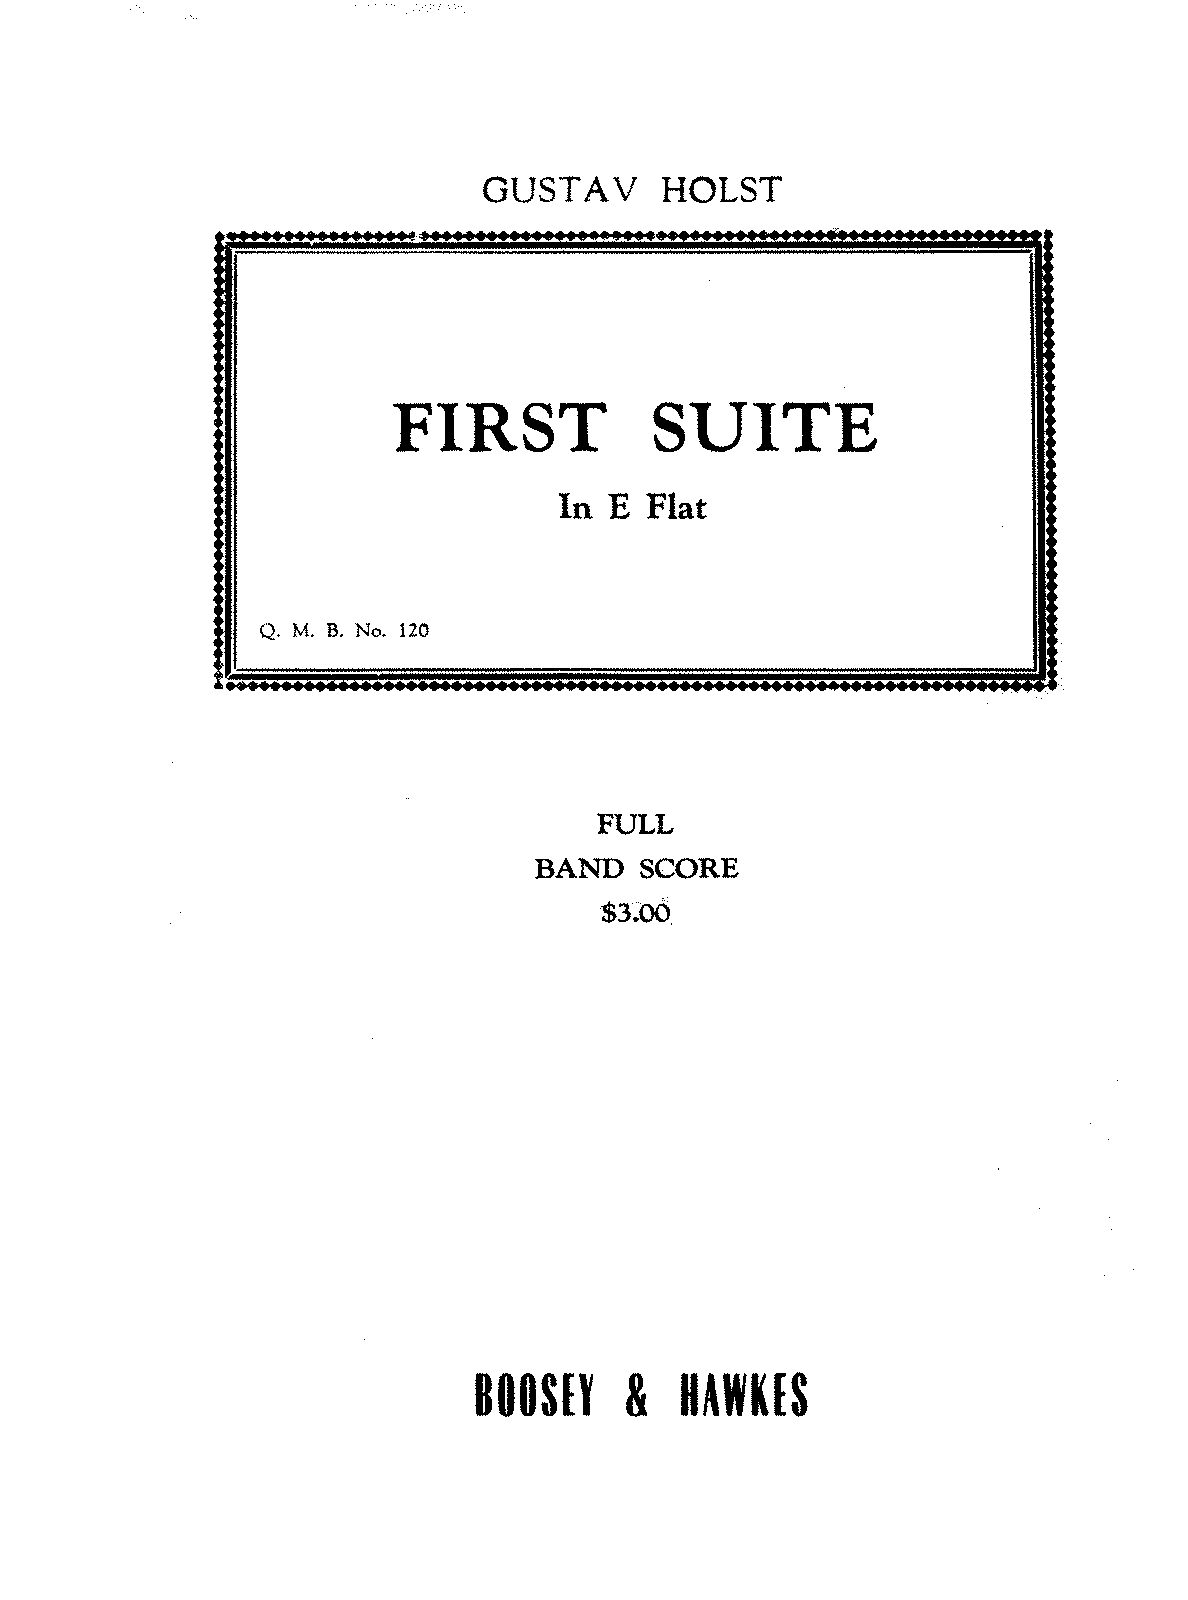 PMLP48937-First Suite in Eb for Military Band.pdf